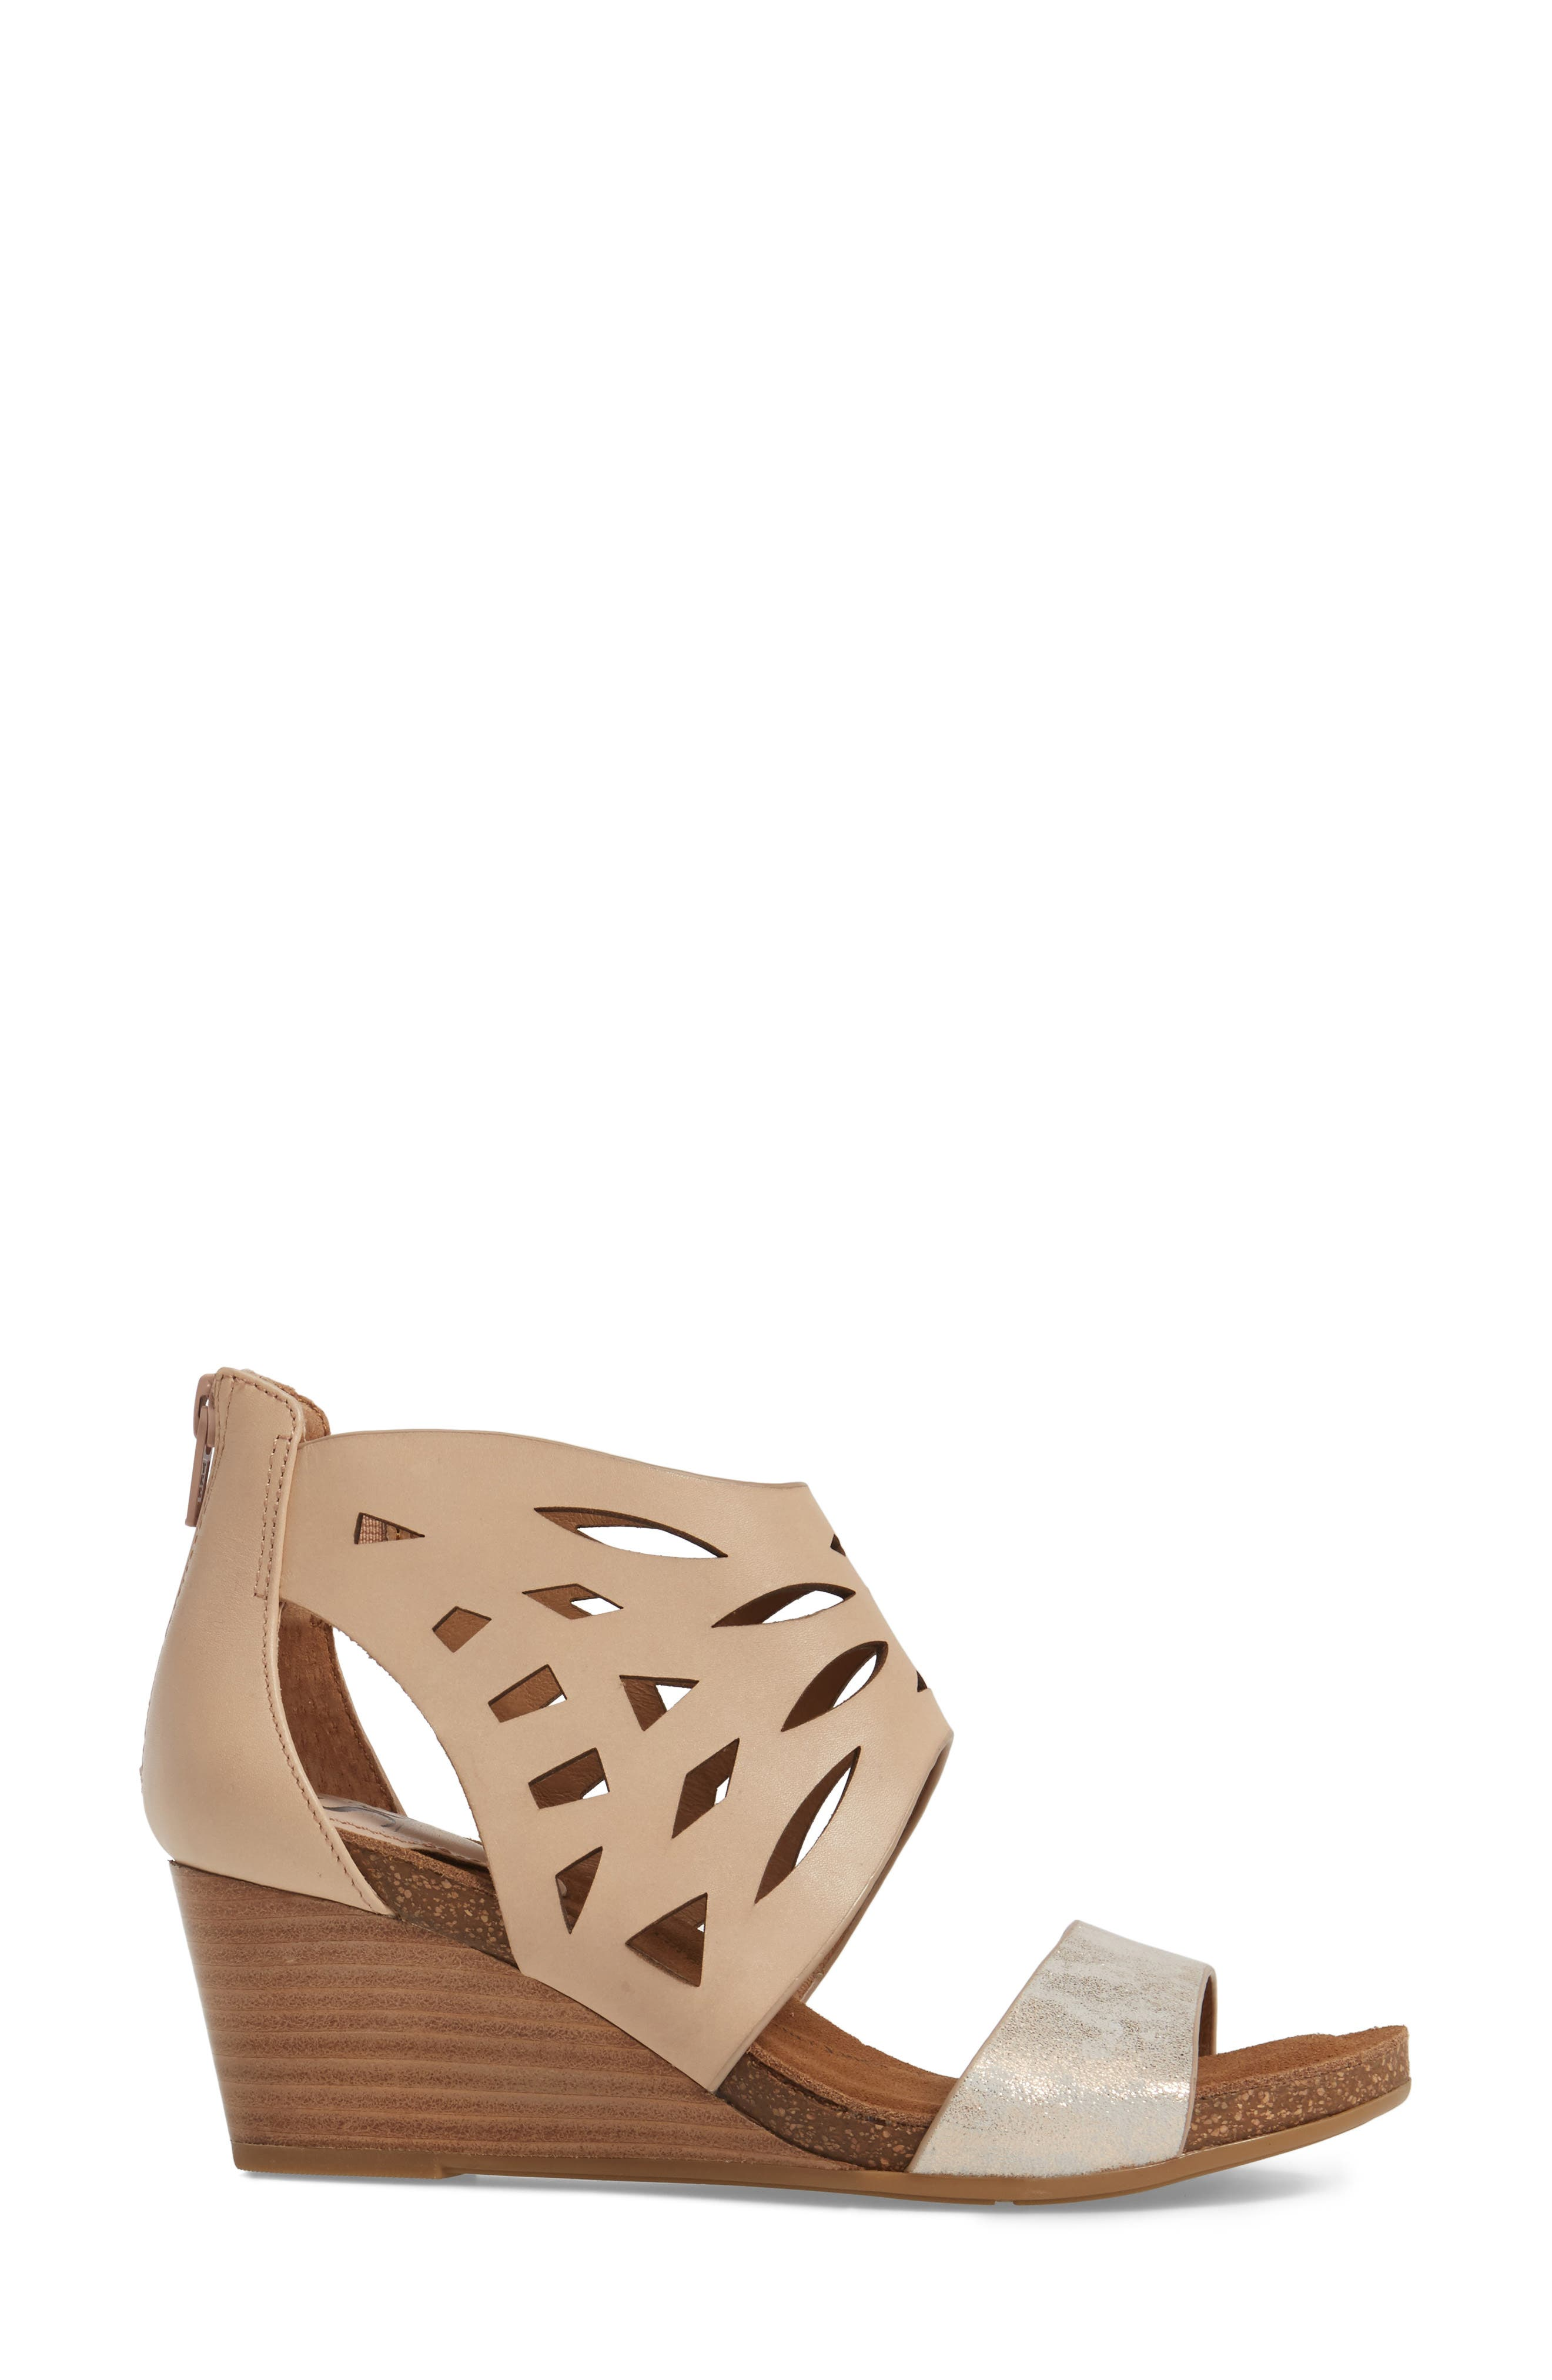 Mystic Perforated Wedge Sandal,                             Alternate thumbnail 3, color,